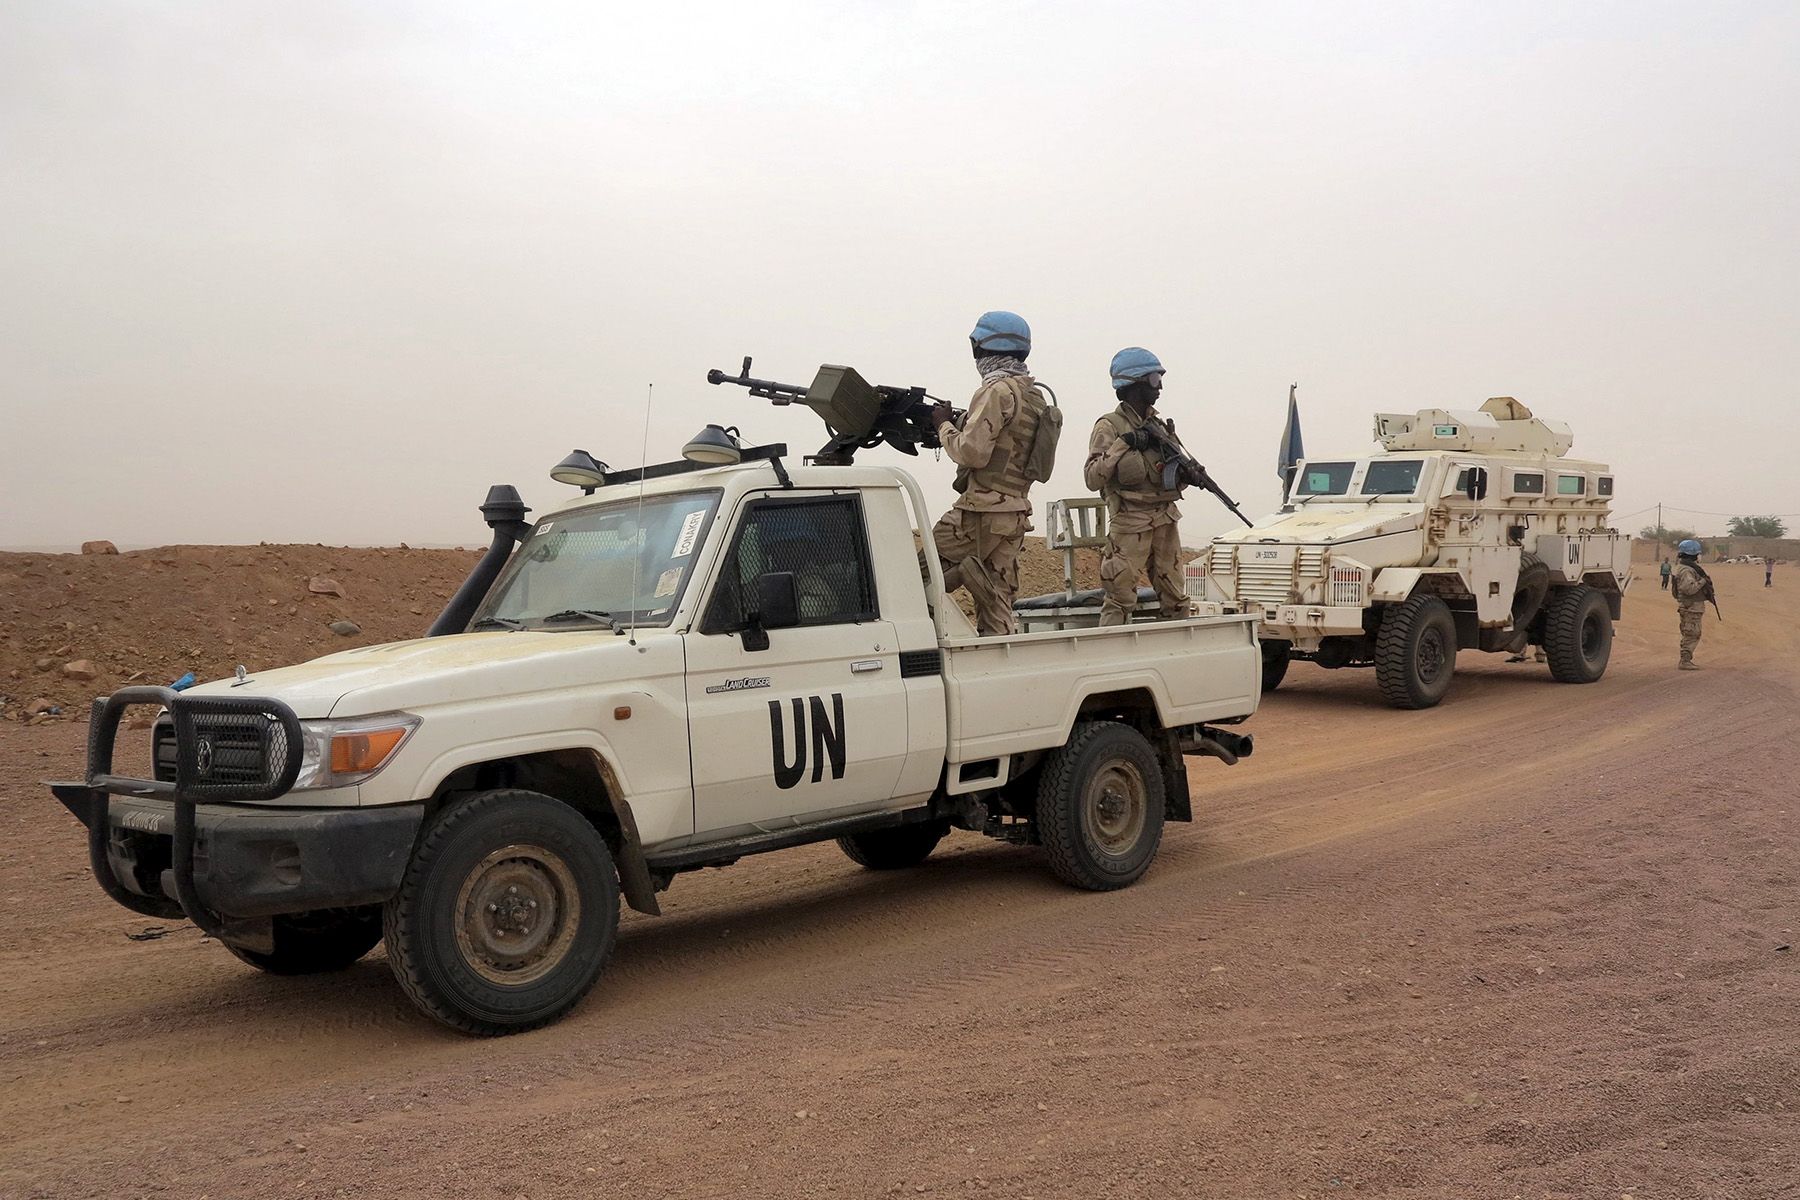 UN peacekeepers patrol in Kidal.